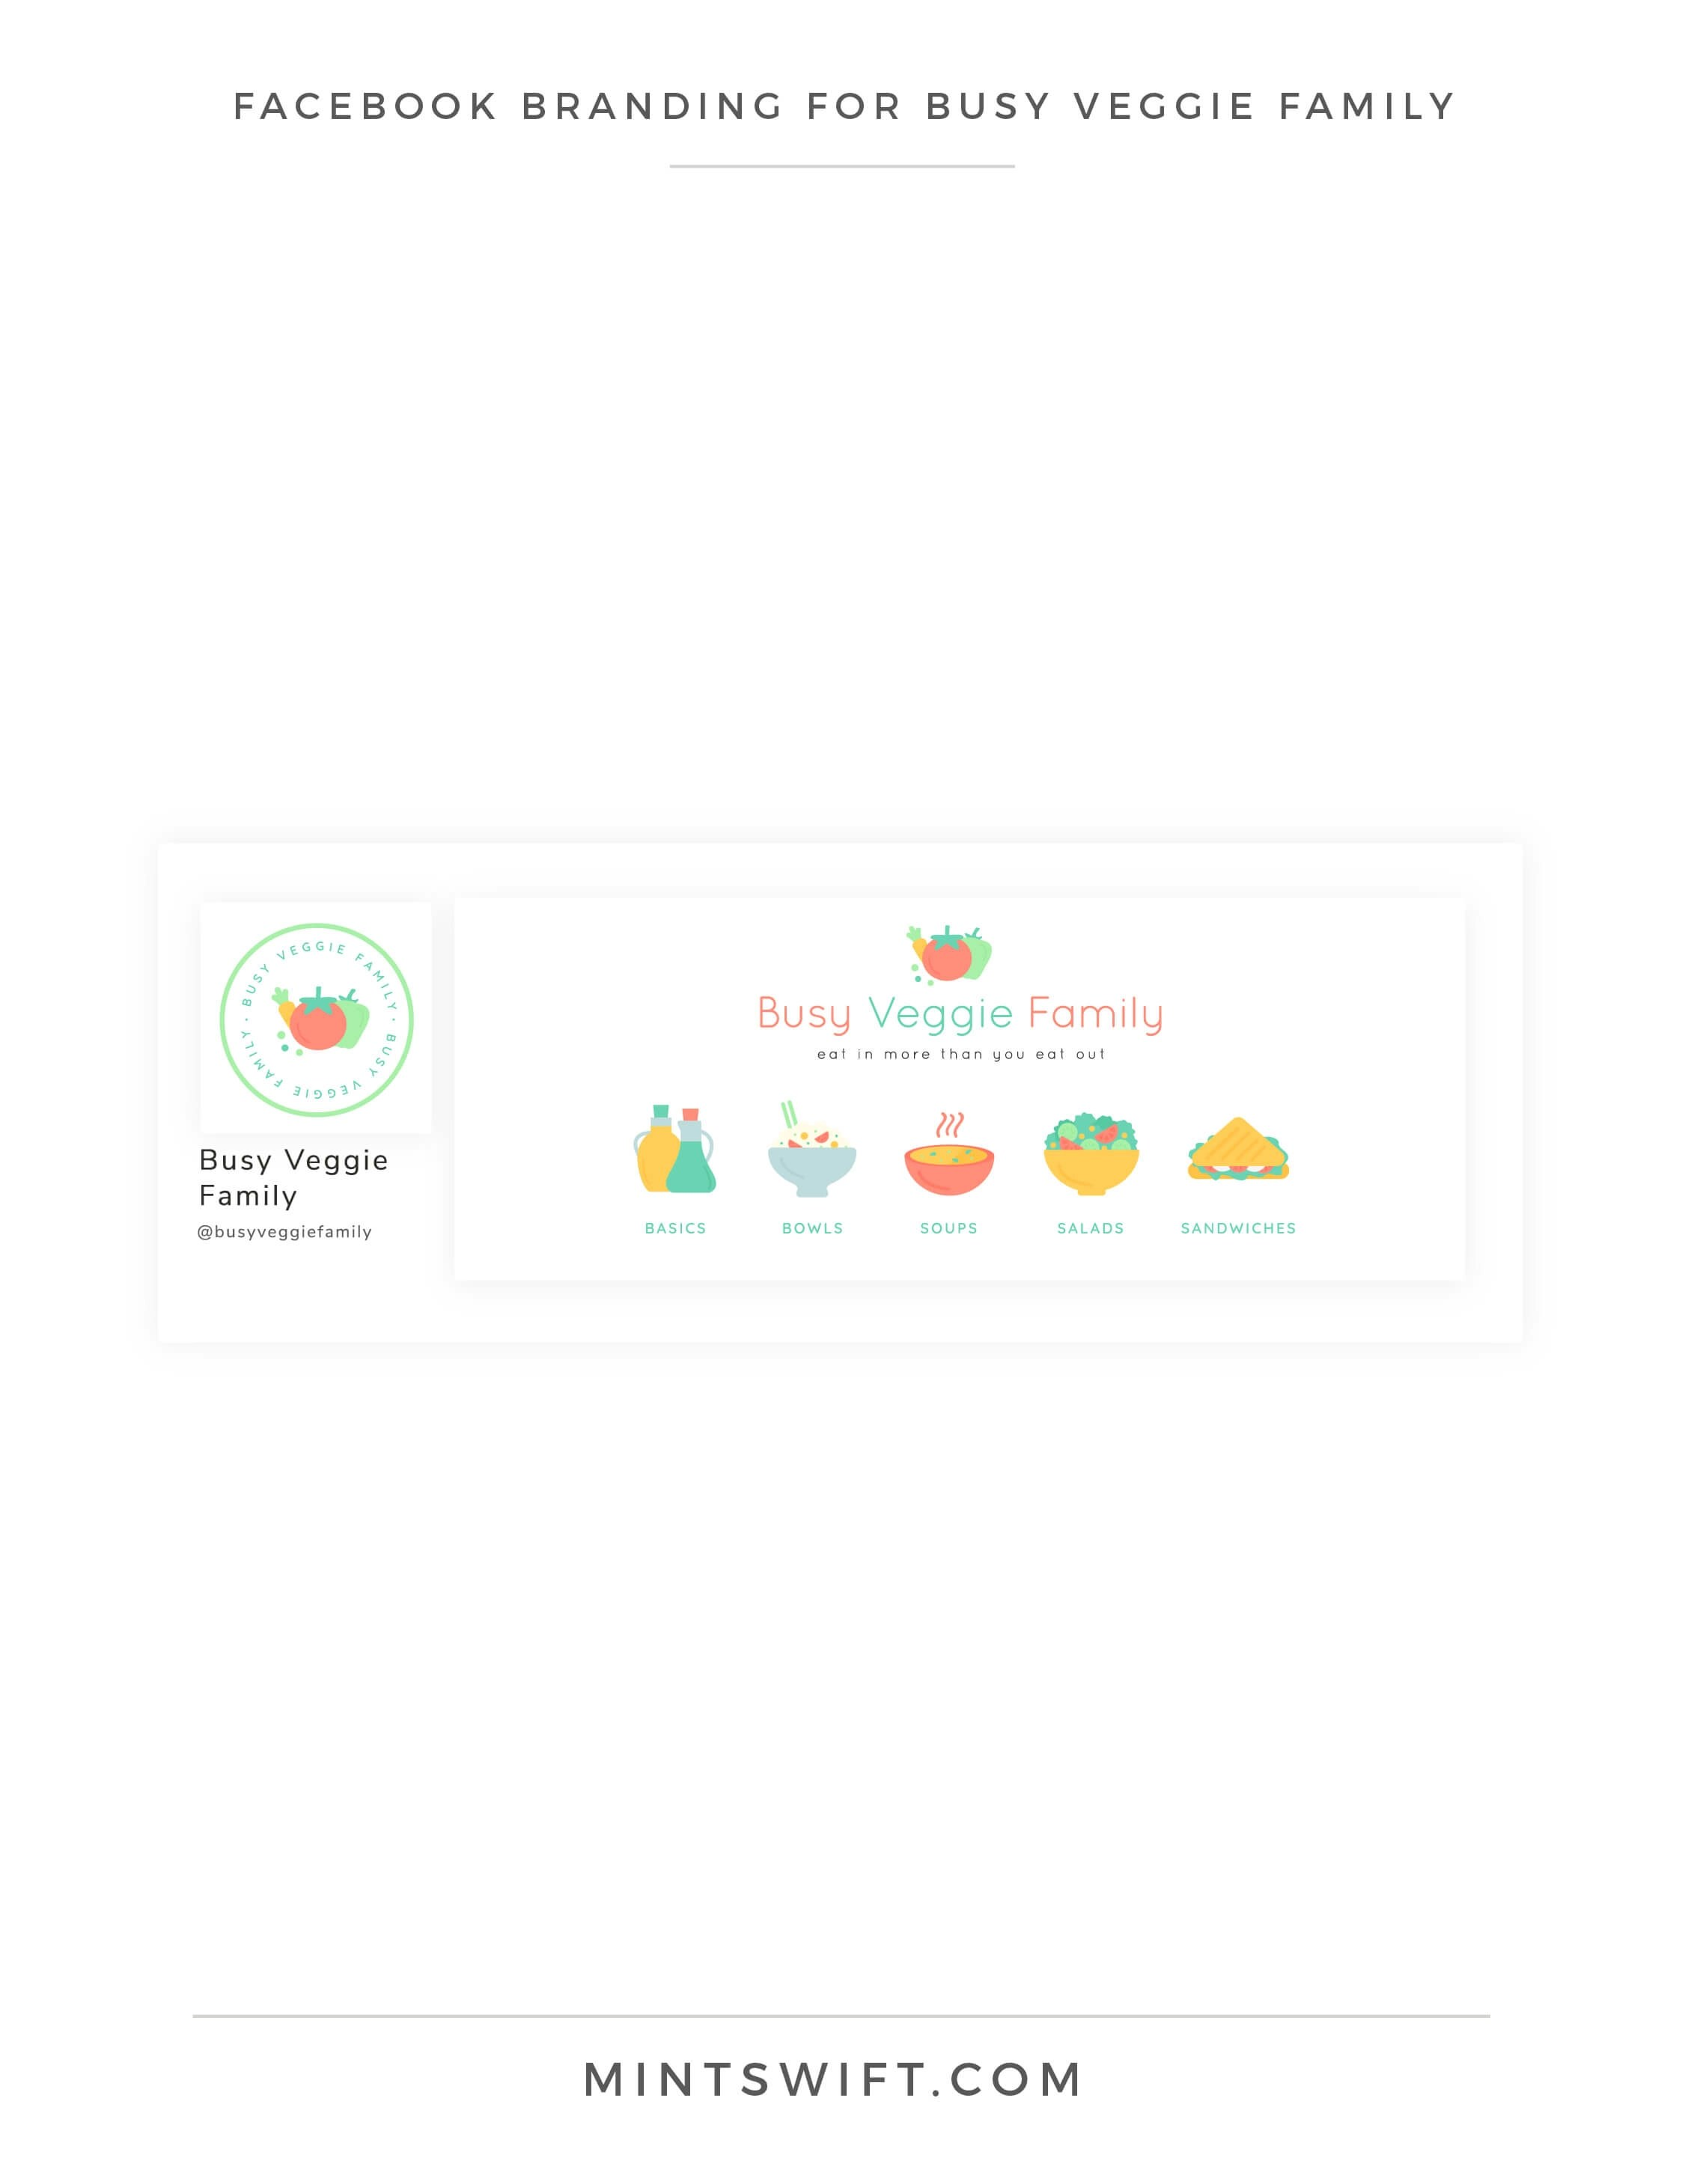 Busy Veggie Family - Facebook Branding - Brand & Website Design Package - MintSwift